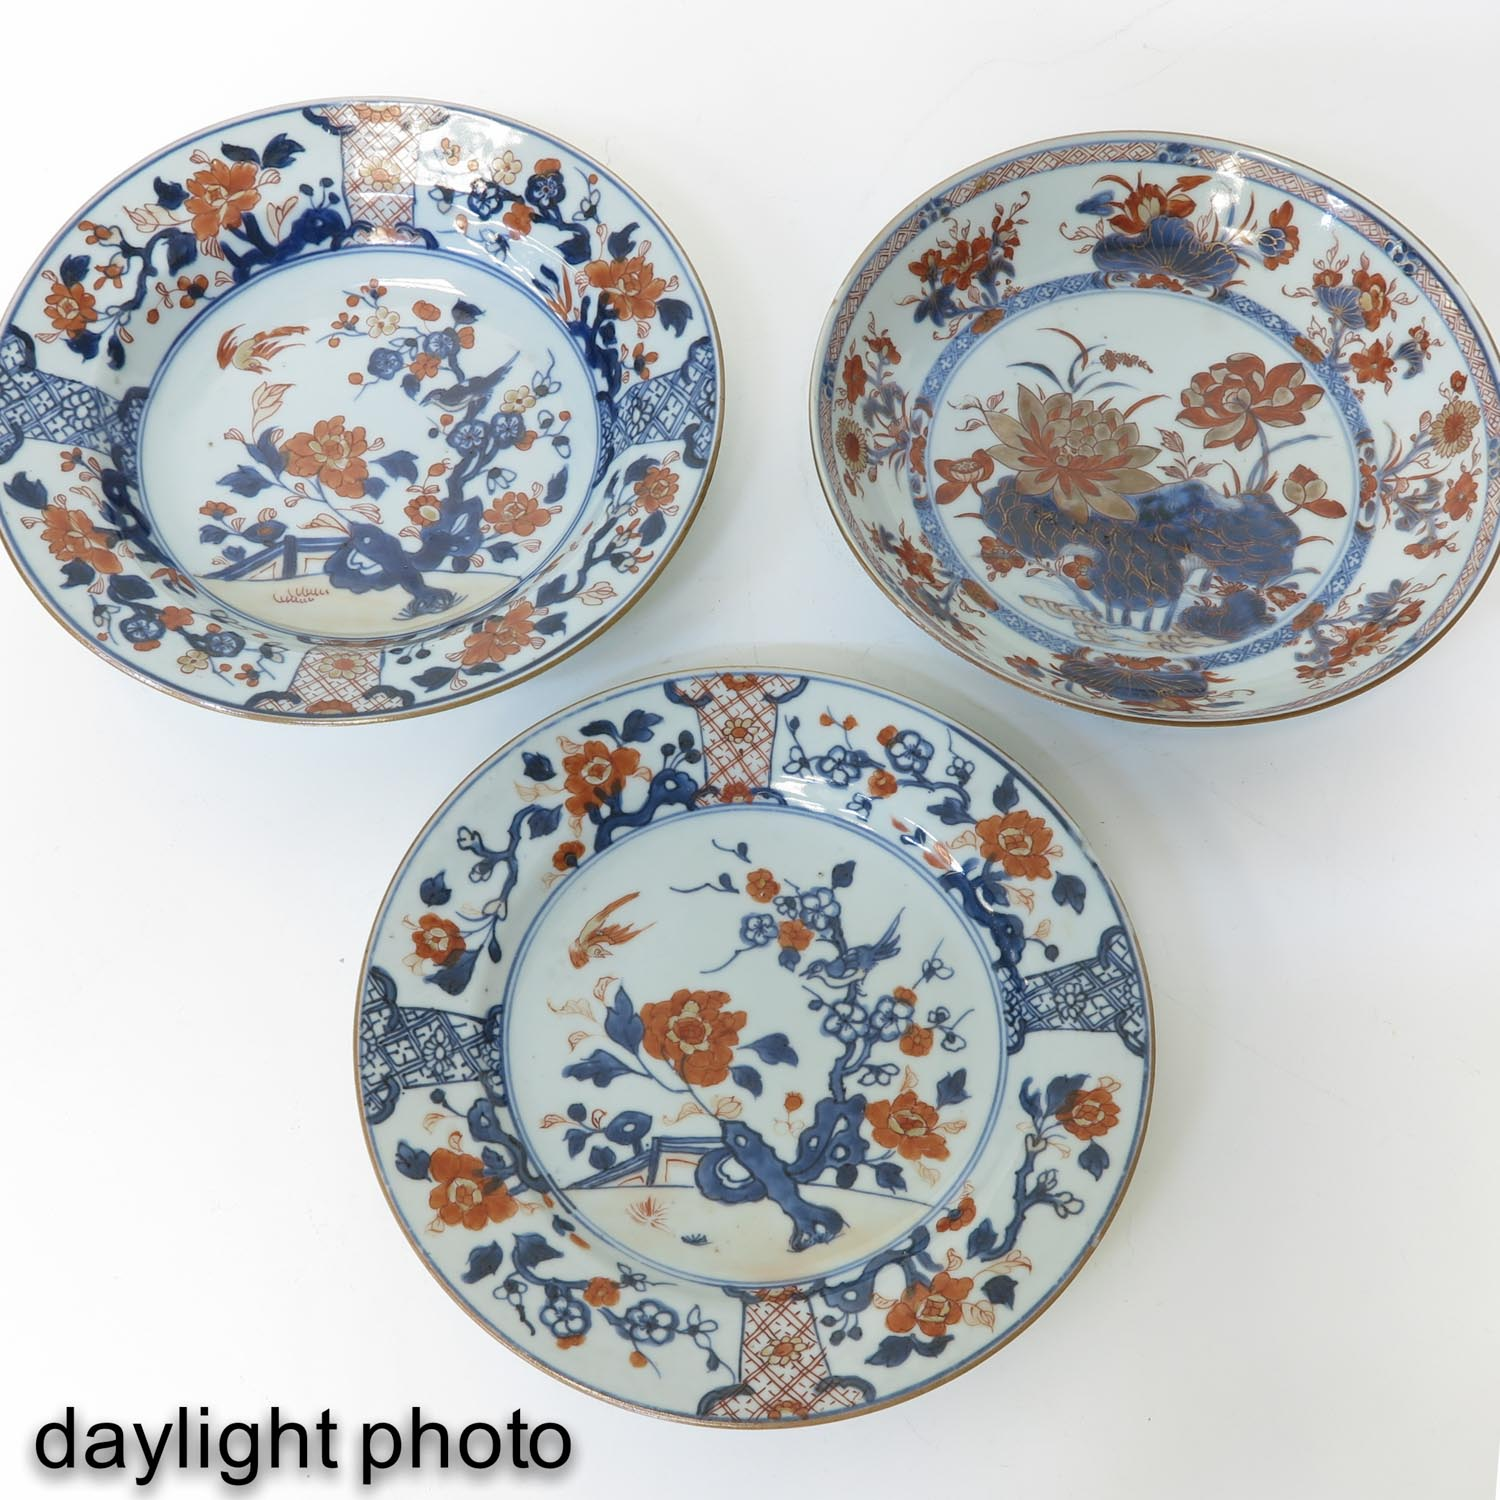 A Collection of 8 Imari Decor Plates - Image 9 of 10